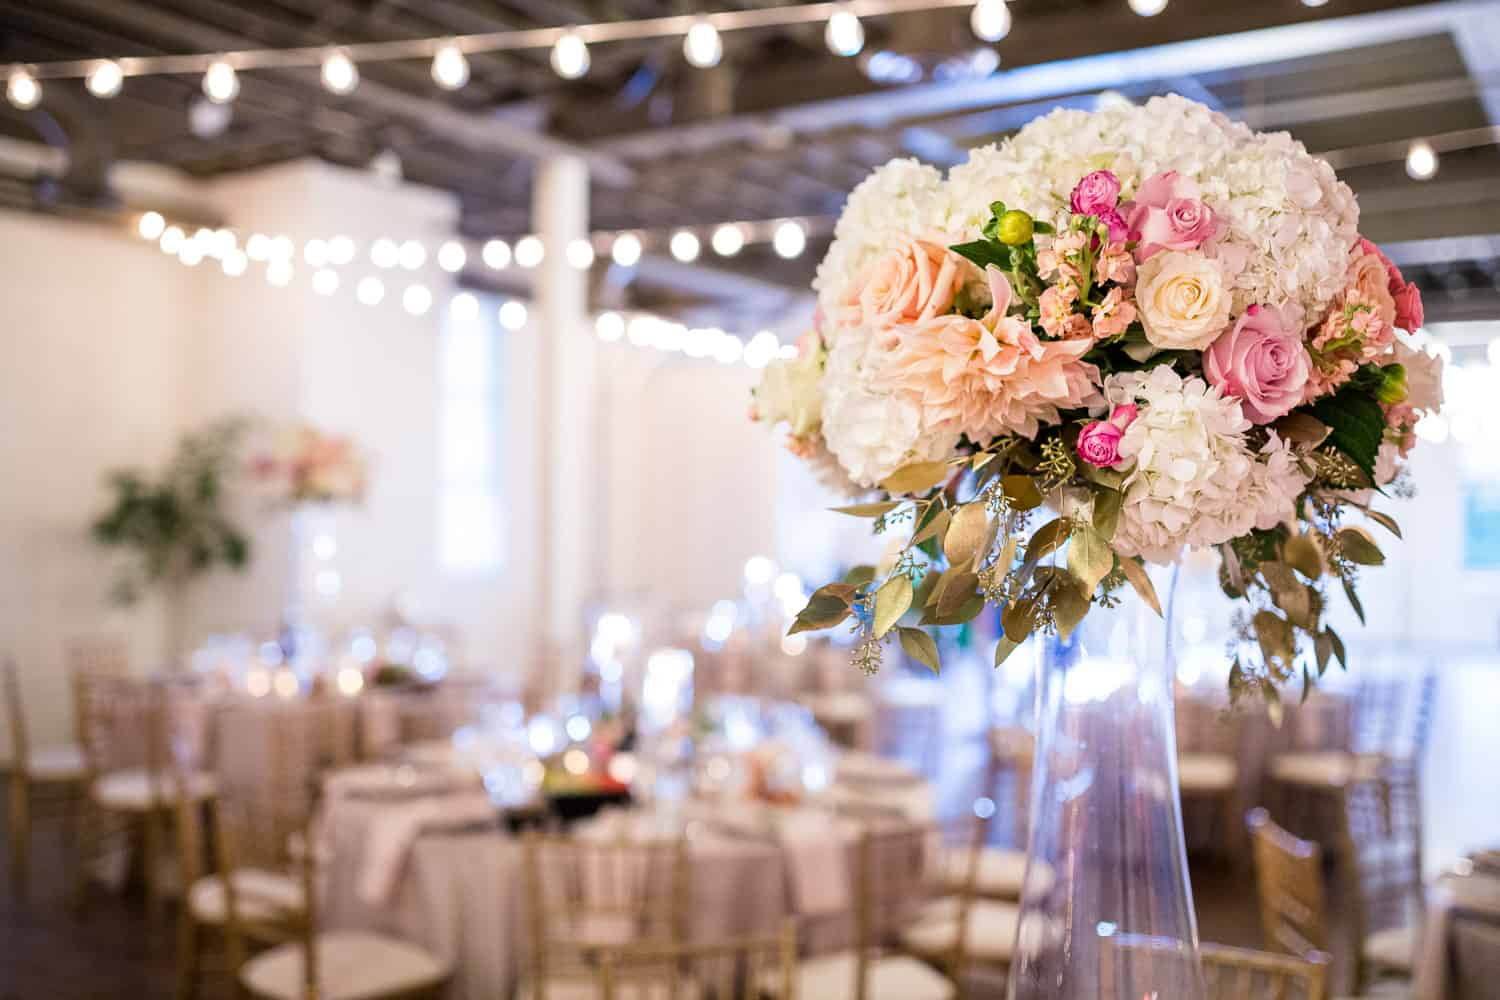 Wedding flowers at Arbor Loft by Stacy K.